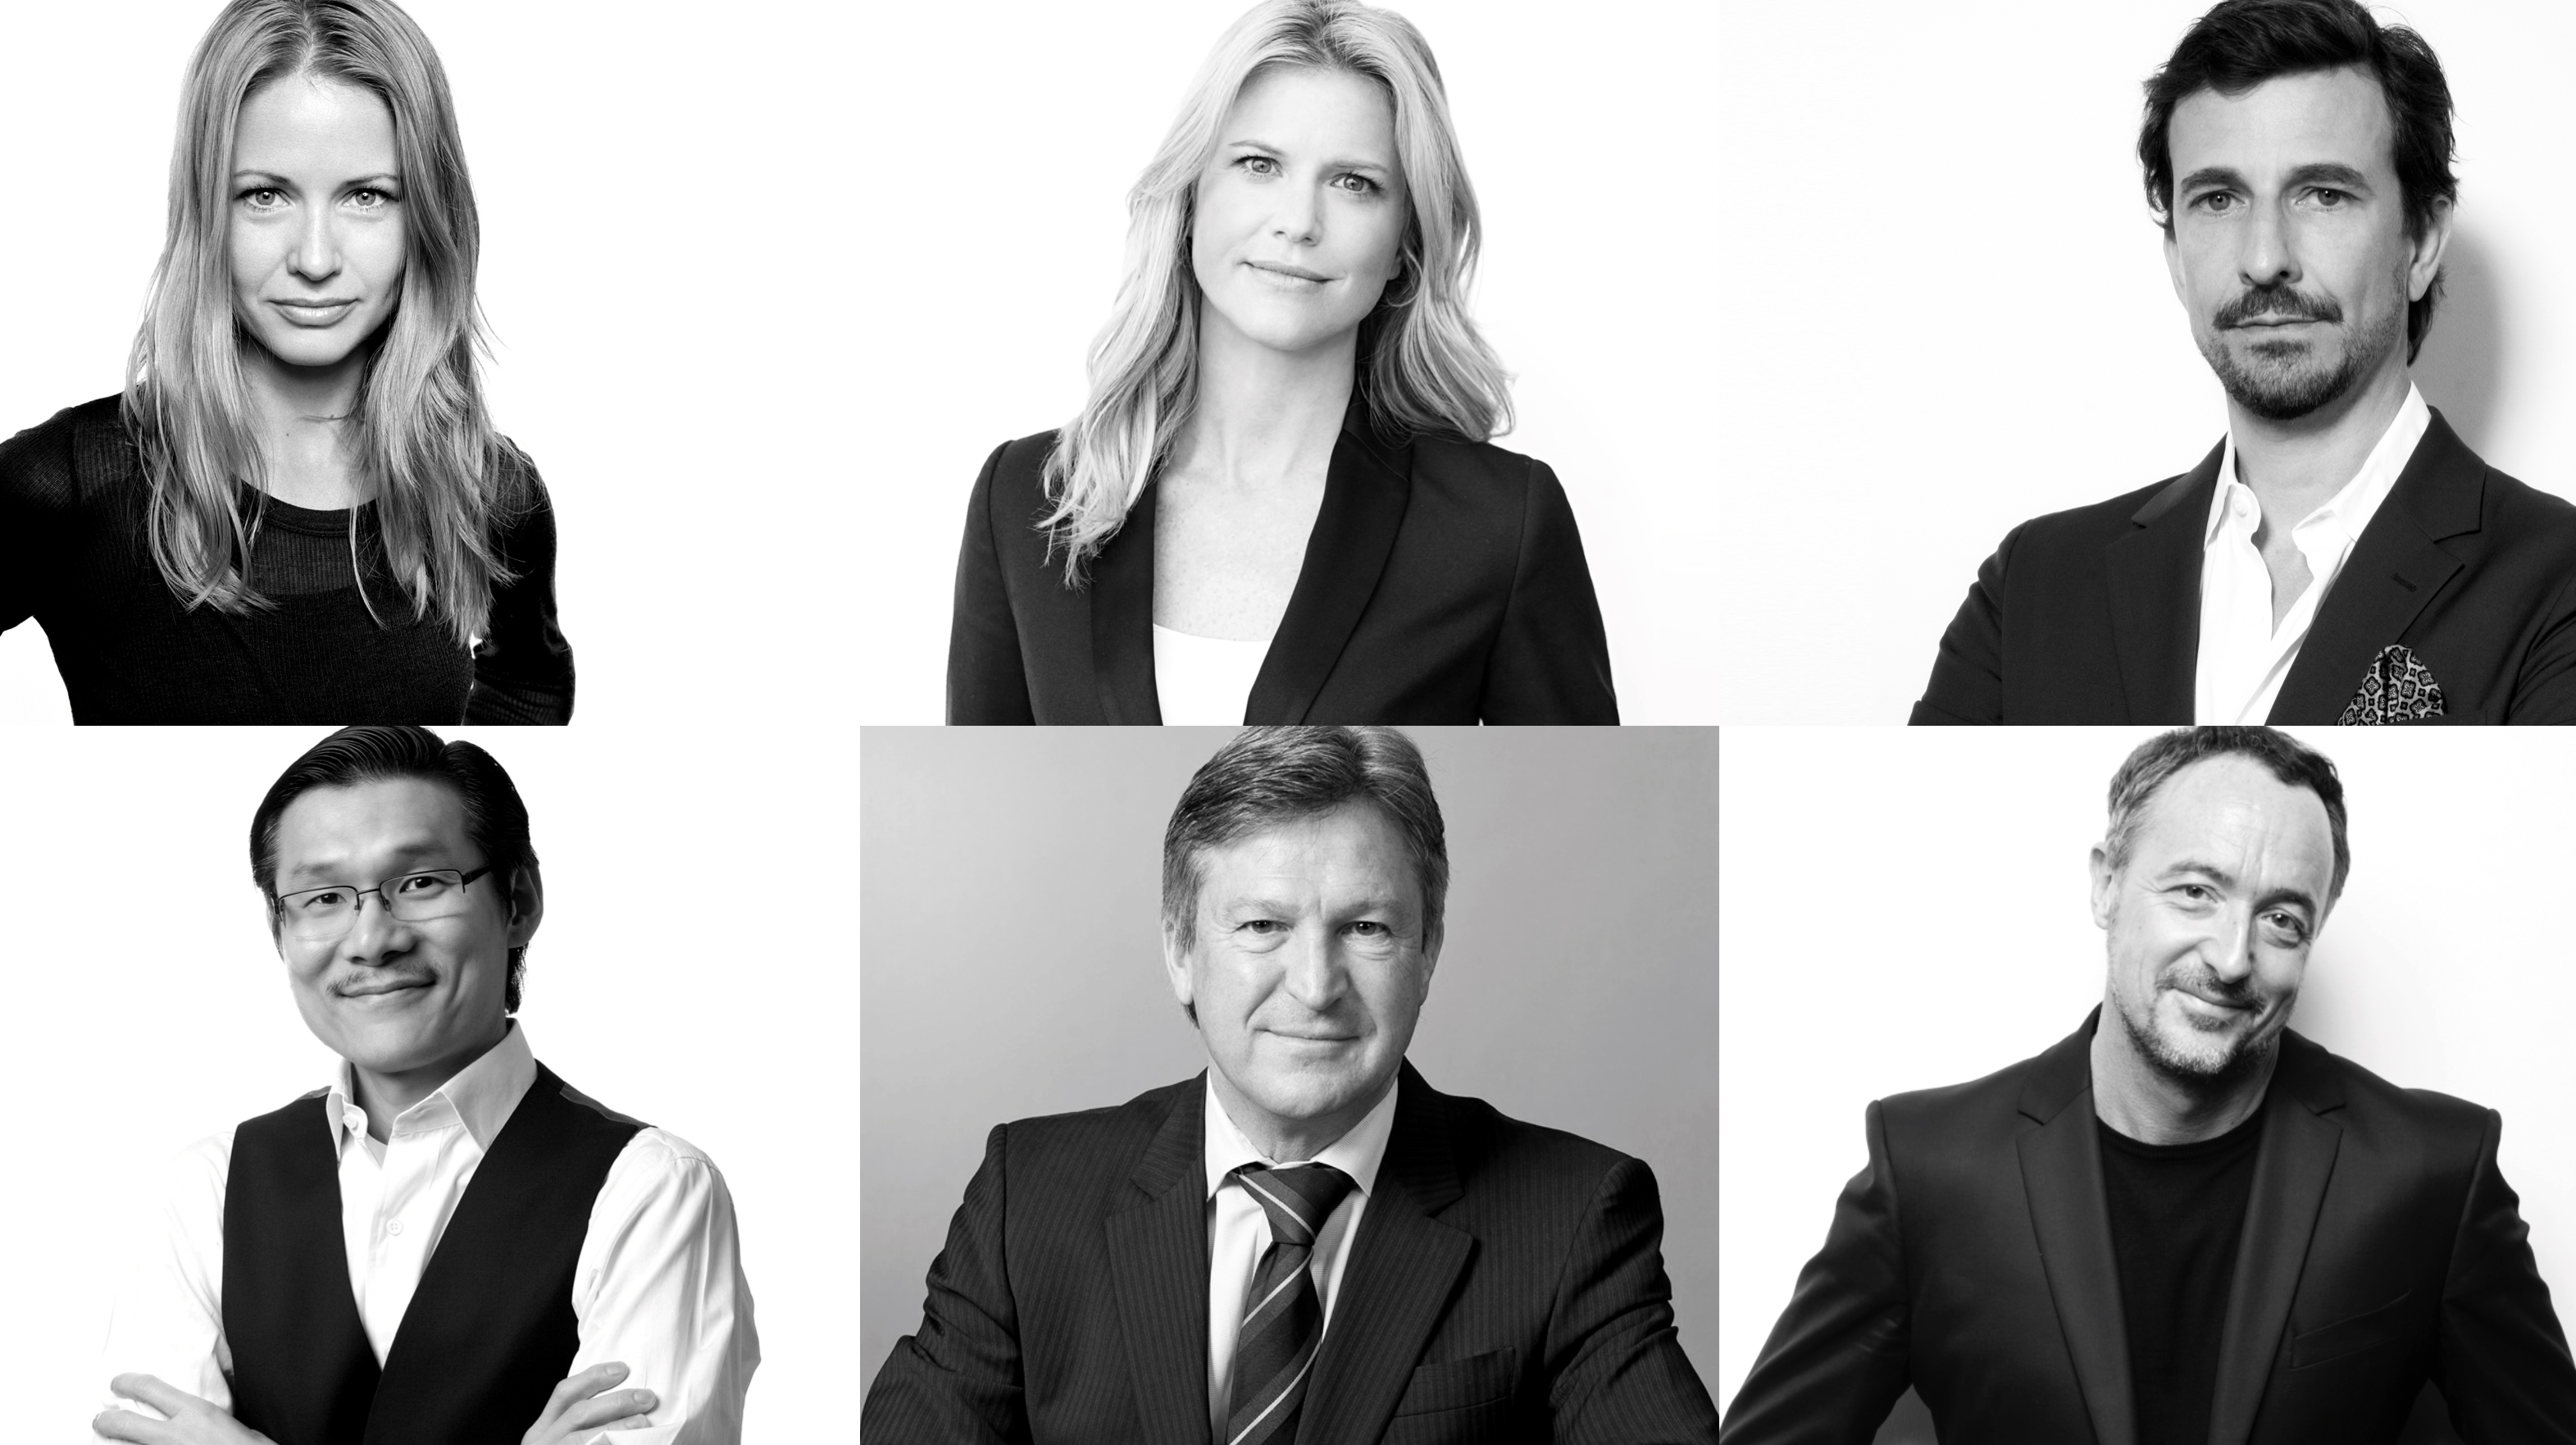 Bold Moves - Avery Baker Departs Tommy Hilfiger, Holli Rogers to Farfetch, Stefano Sutter to Tory Burch